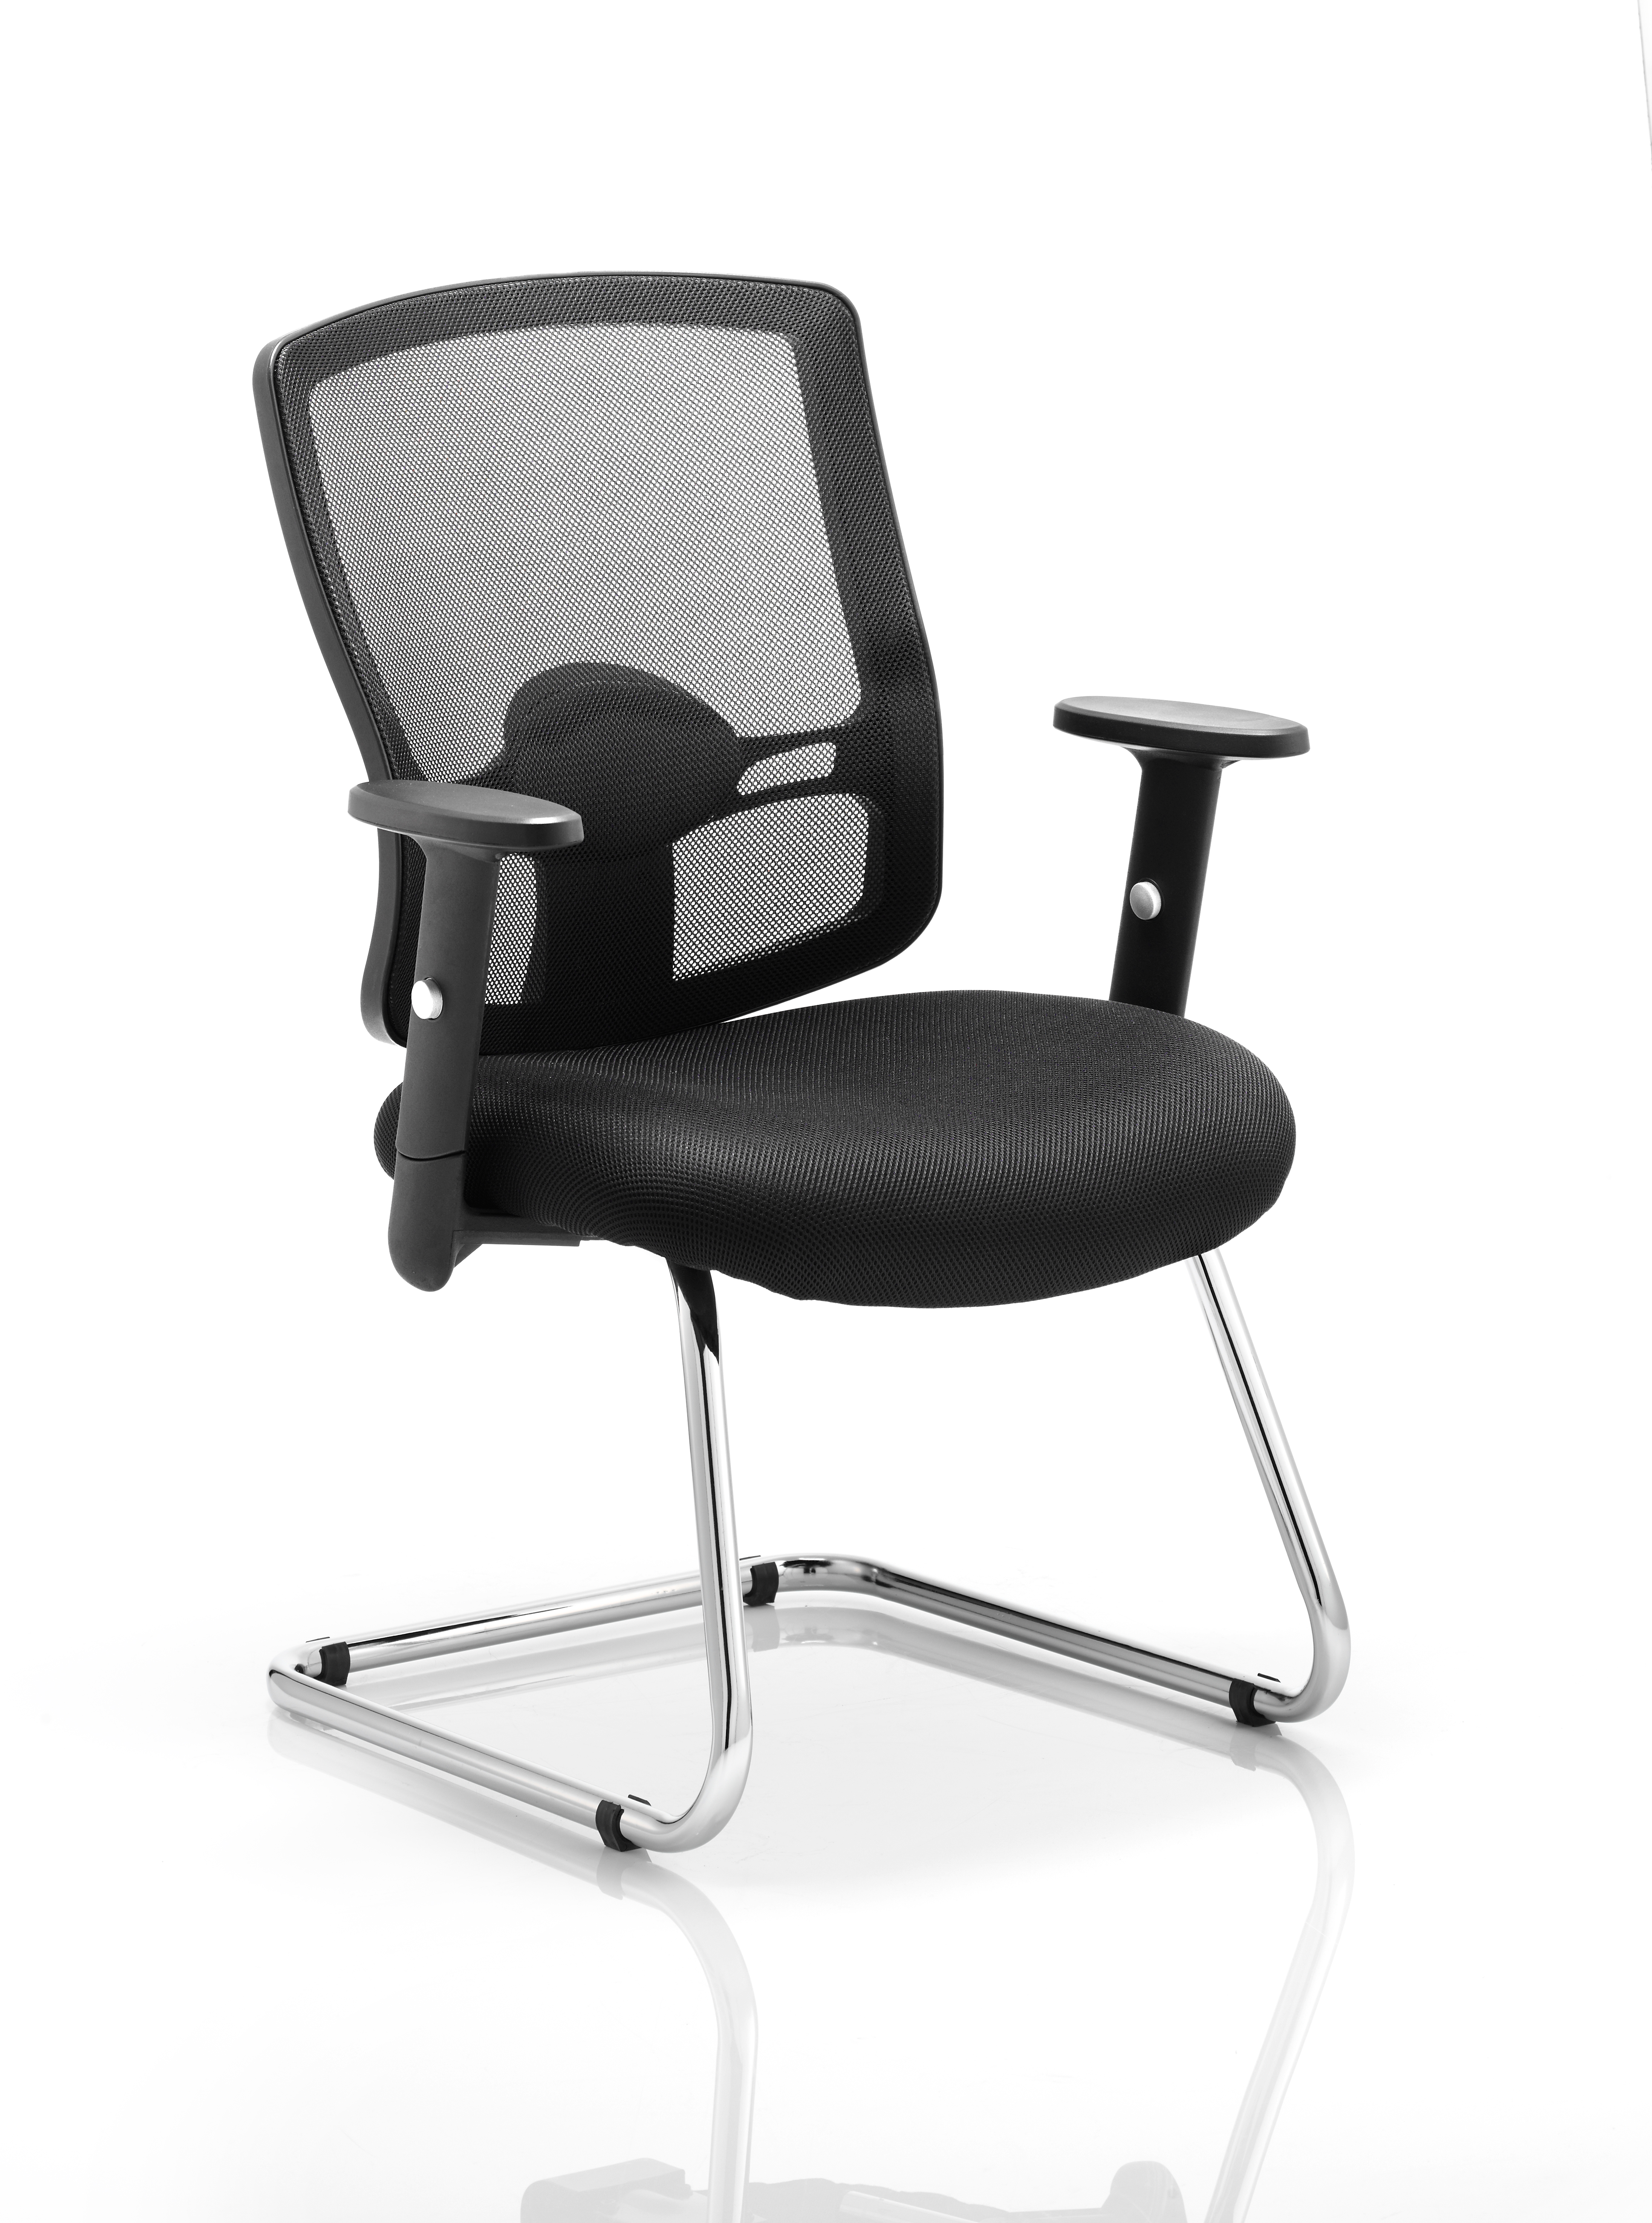 Reception Chairs Portland Cantilever Chair Black Mesh With Arms EX000136